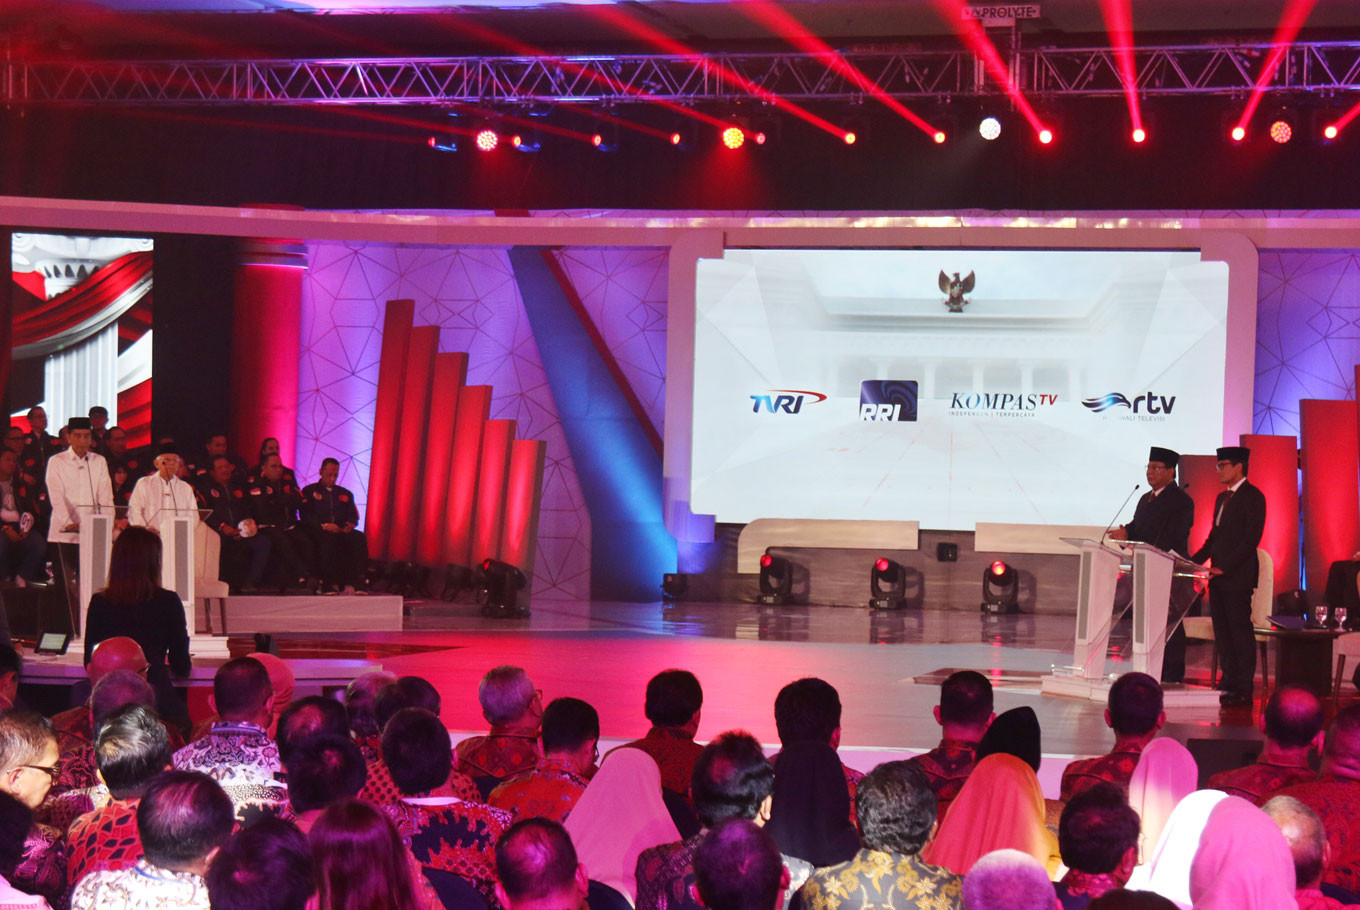 [UPDATED] One down, four more debates for Jokowi-Maruf vs Prabowo-Sandiaga